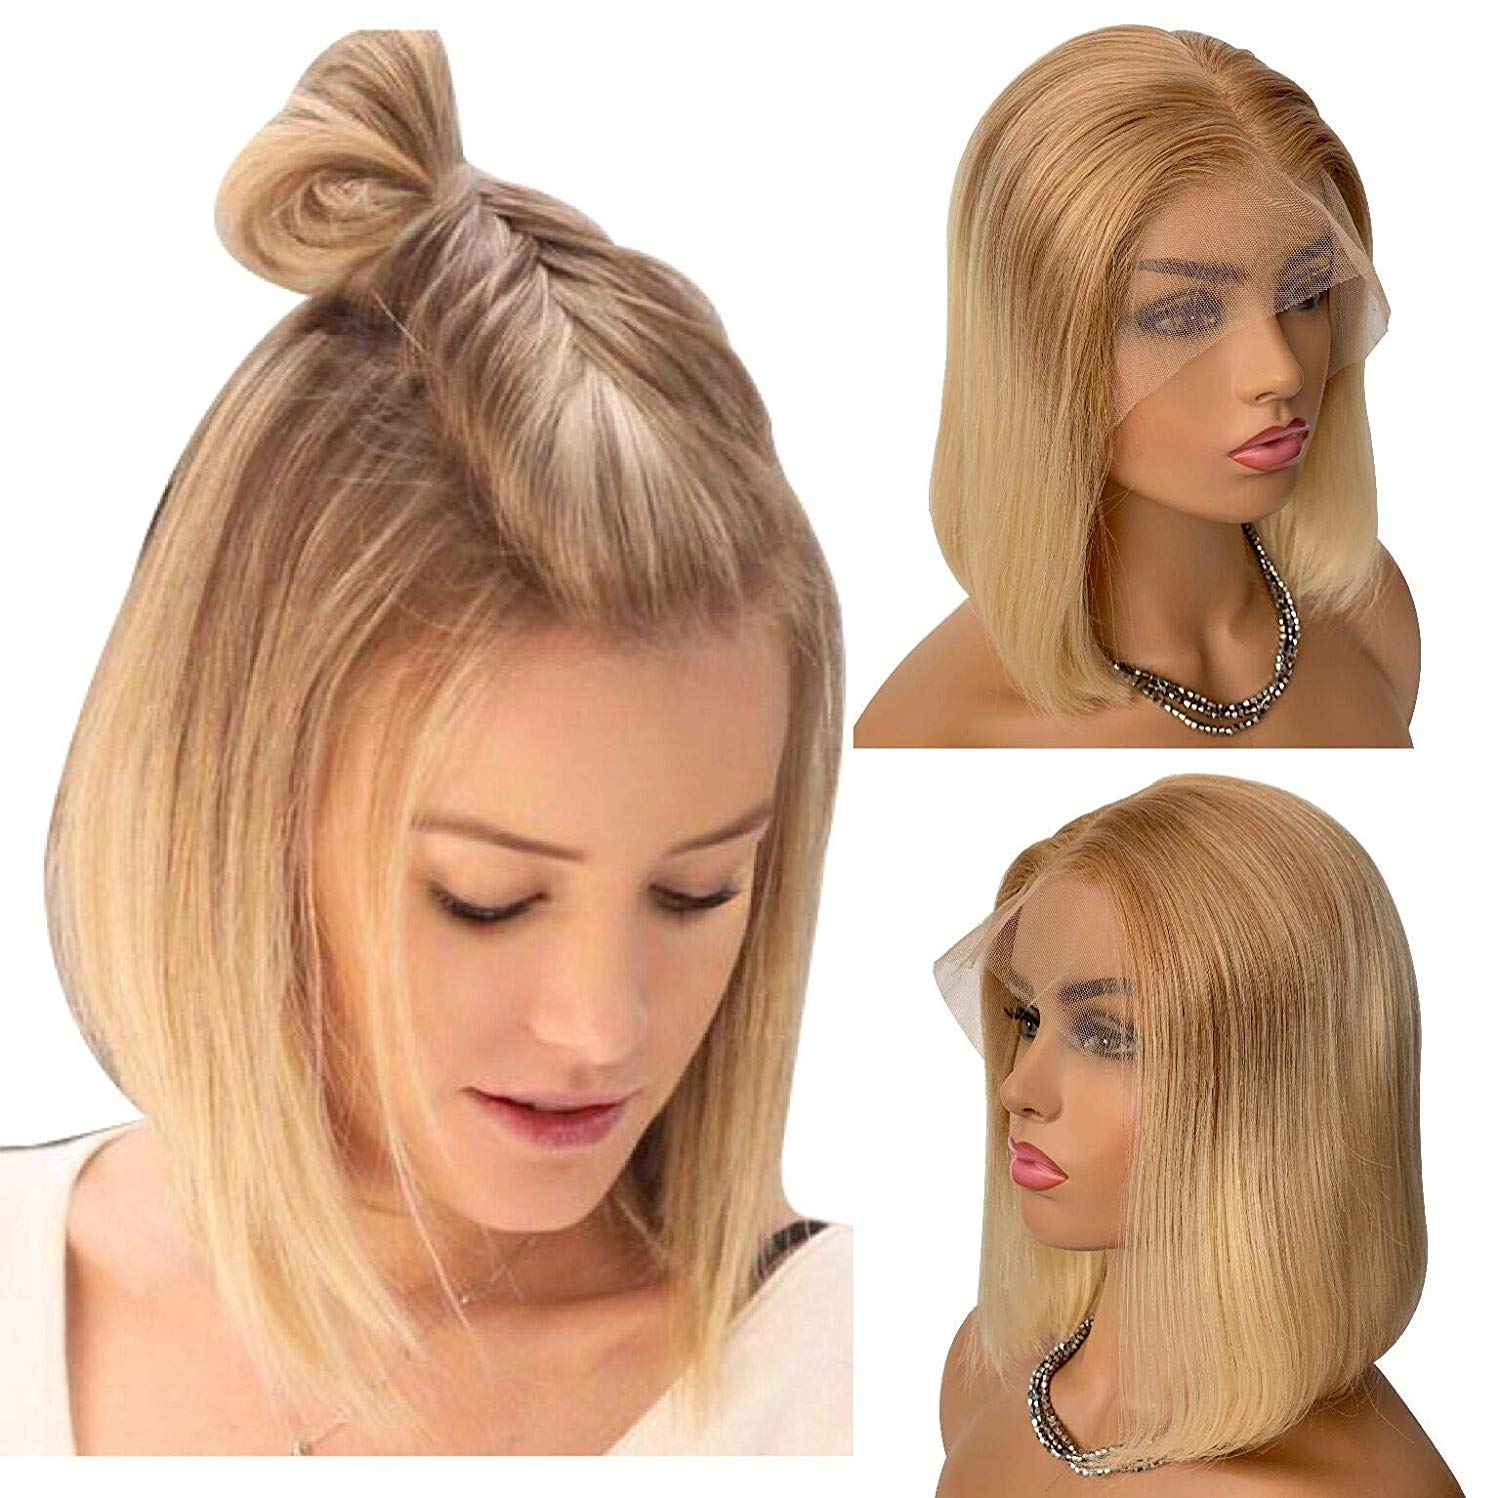 Blonde Wigs For White Women Lace Front Human Hair Wig Glueless Golden Brown Omber Blonde 13x4 Pre Plucked #T12/613 150% Density